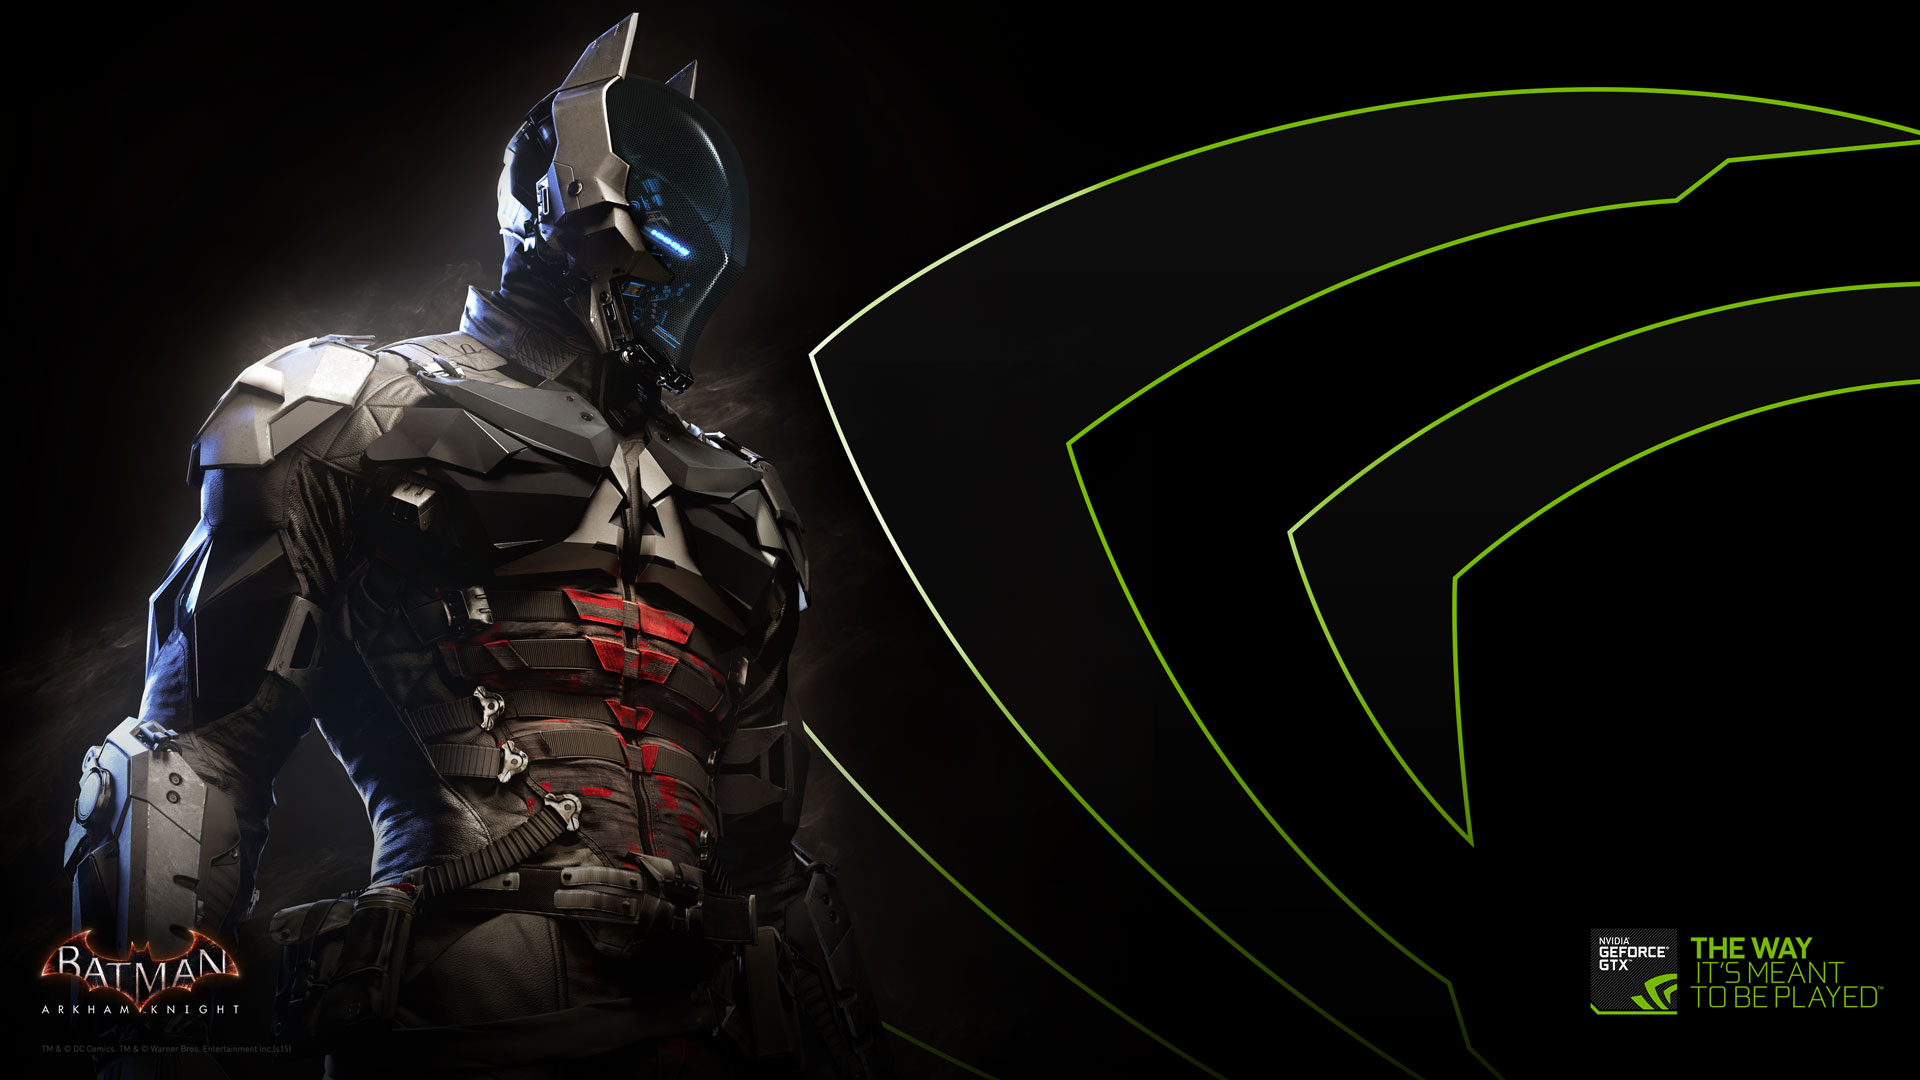 Download these Batman: Arkham Knight Wallpapers